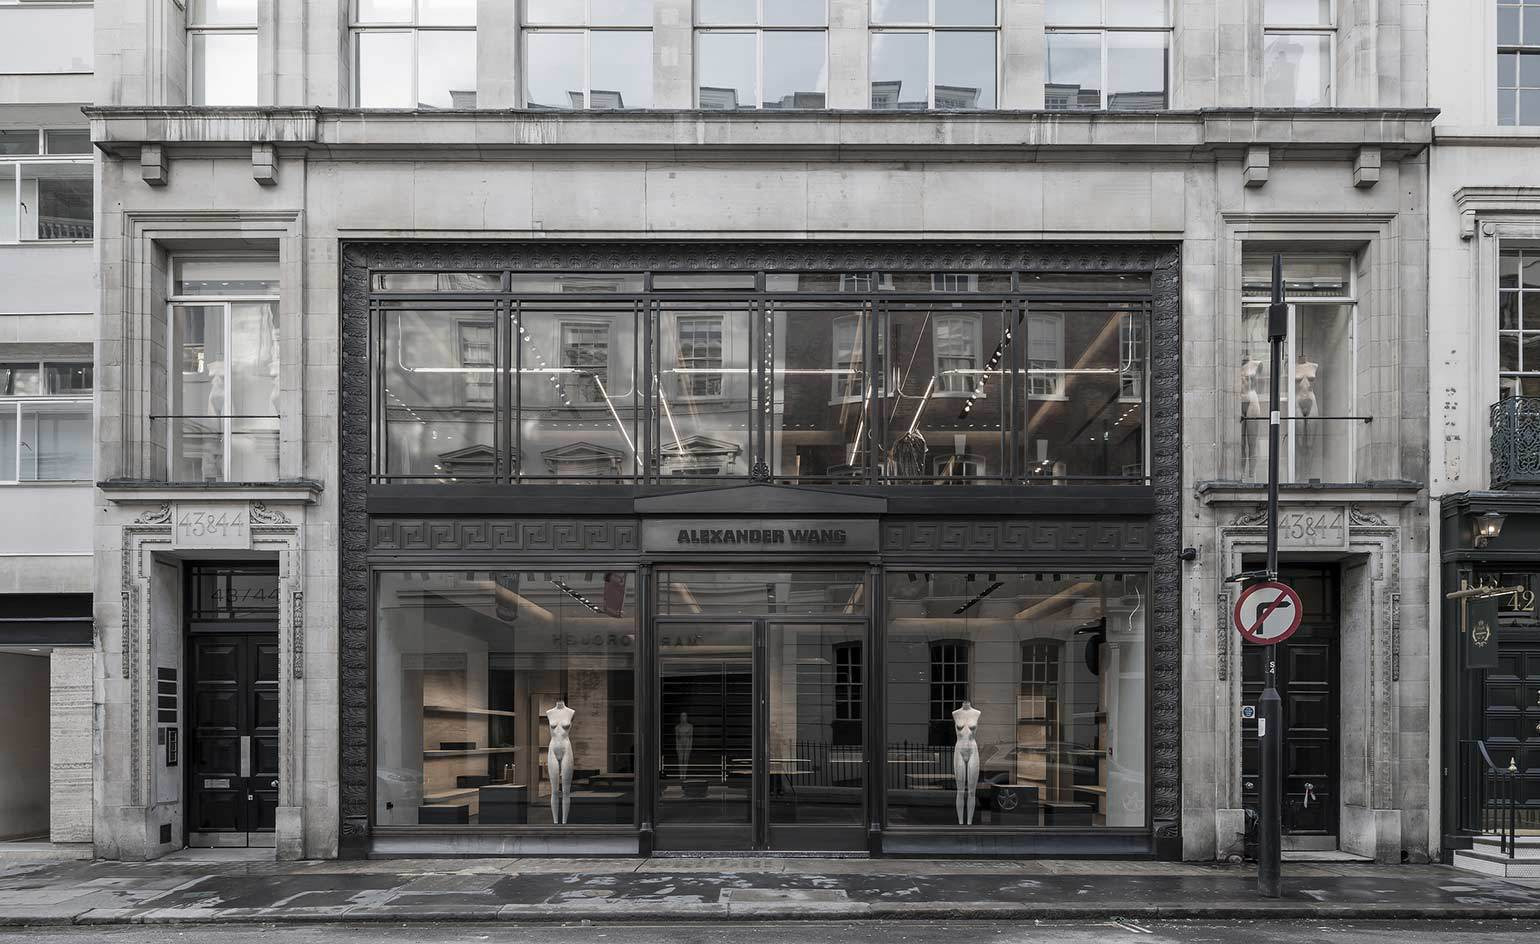 Wallpaper Vincent Van Duysen Transforms Former Post Office Into Alexander Wang S London Flagship En